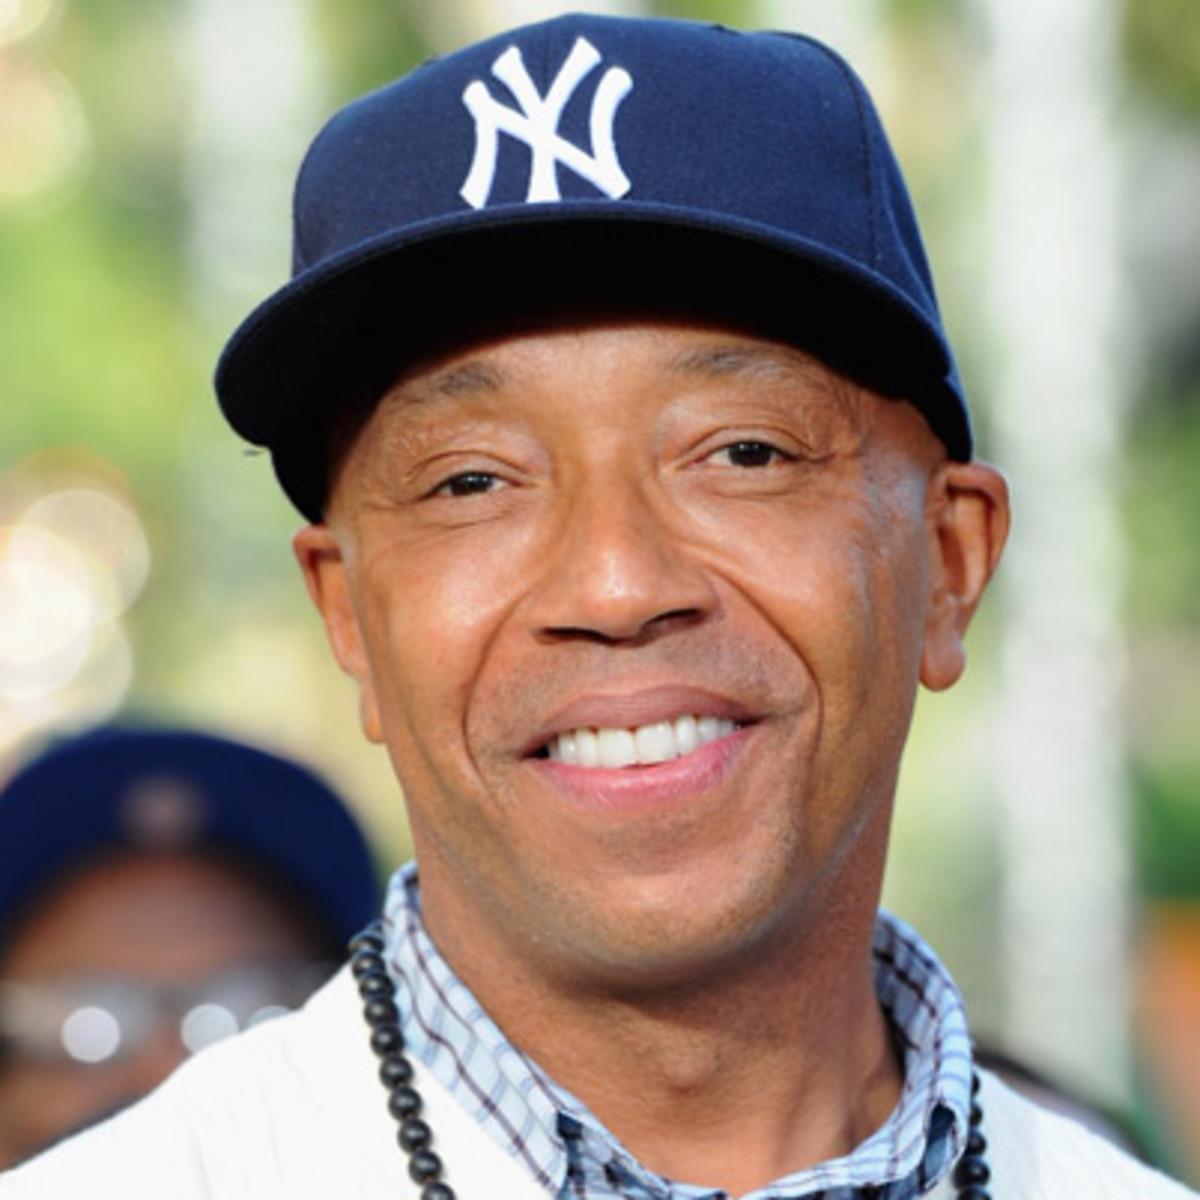 russell-simmons-307186-1-402.jpg